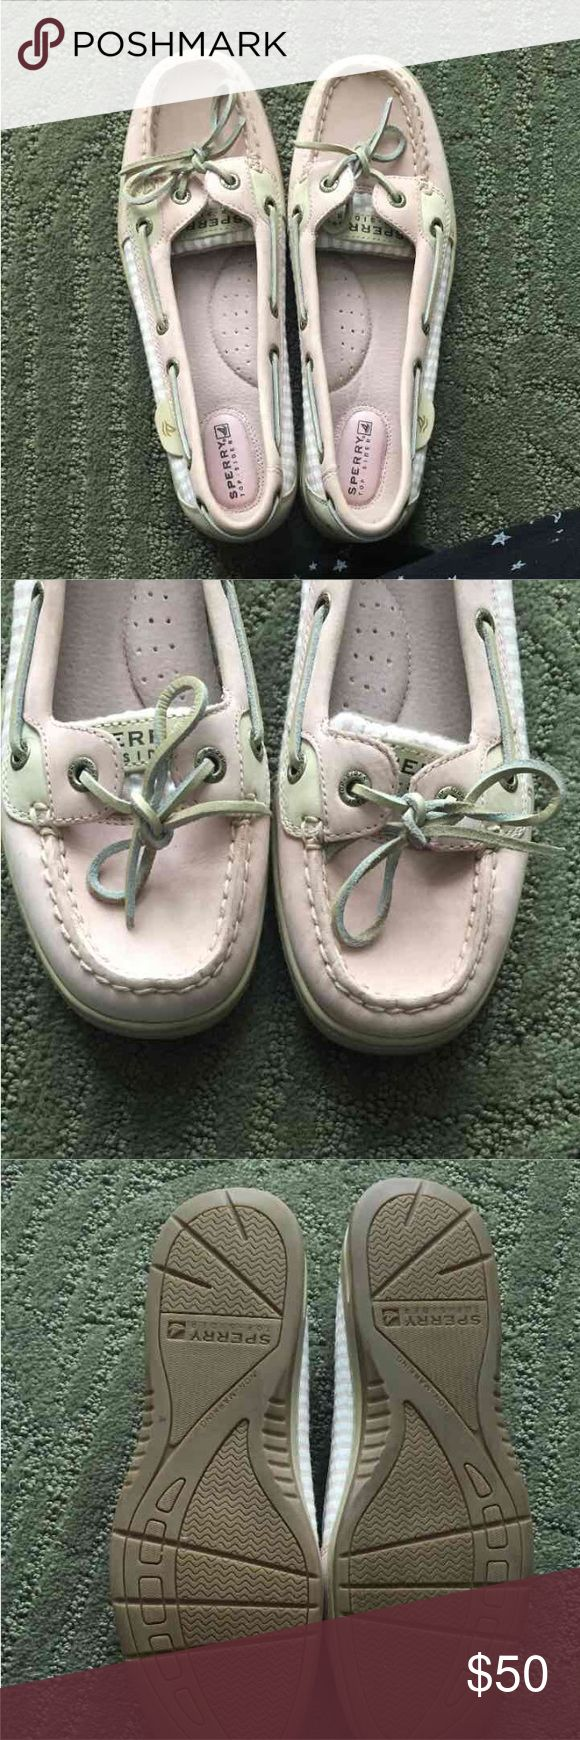 Sz 7.5 pink sperrys Women's size 7.5 light pink Sperry  I love these shoes! I bought a pair for myself and my sister and wear mine all the time, unfortunately I bought her the wording size.  Fits true to size  New without tags and doesn't come with box  MAKE OFFERS- BUNDLE AND SAVE Sperry Top-Sider Shoes Flats & Loafers